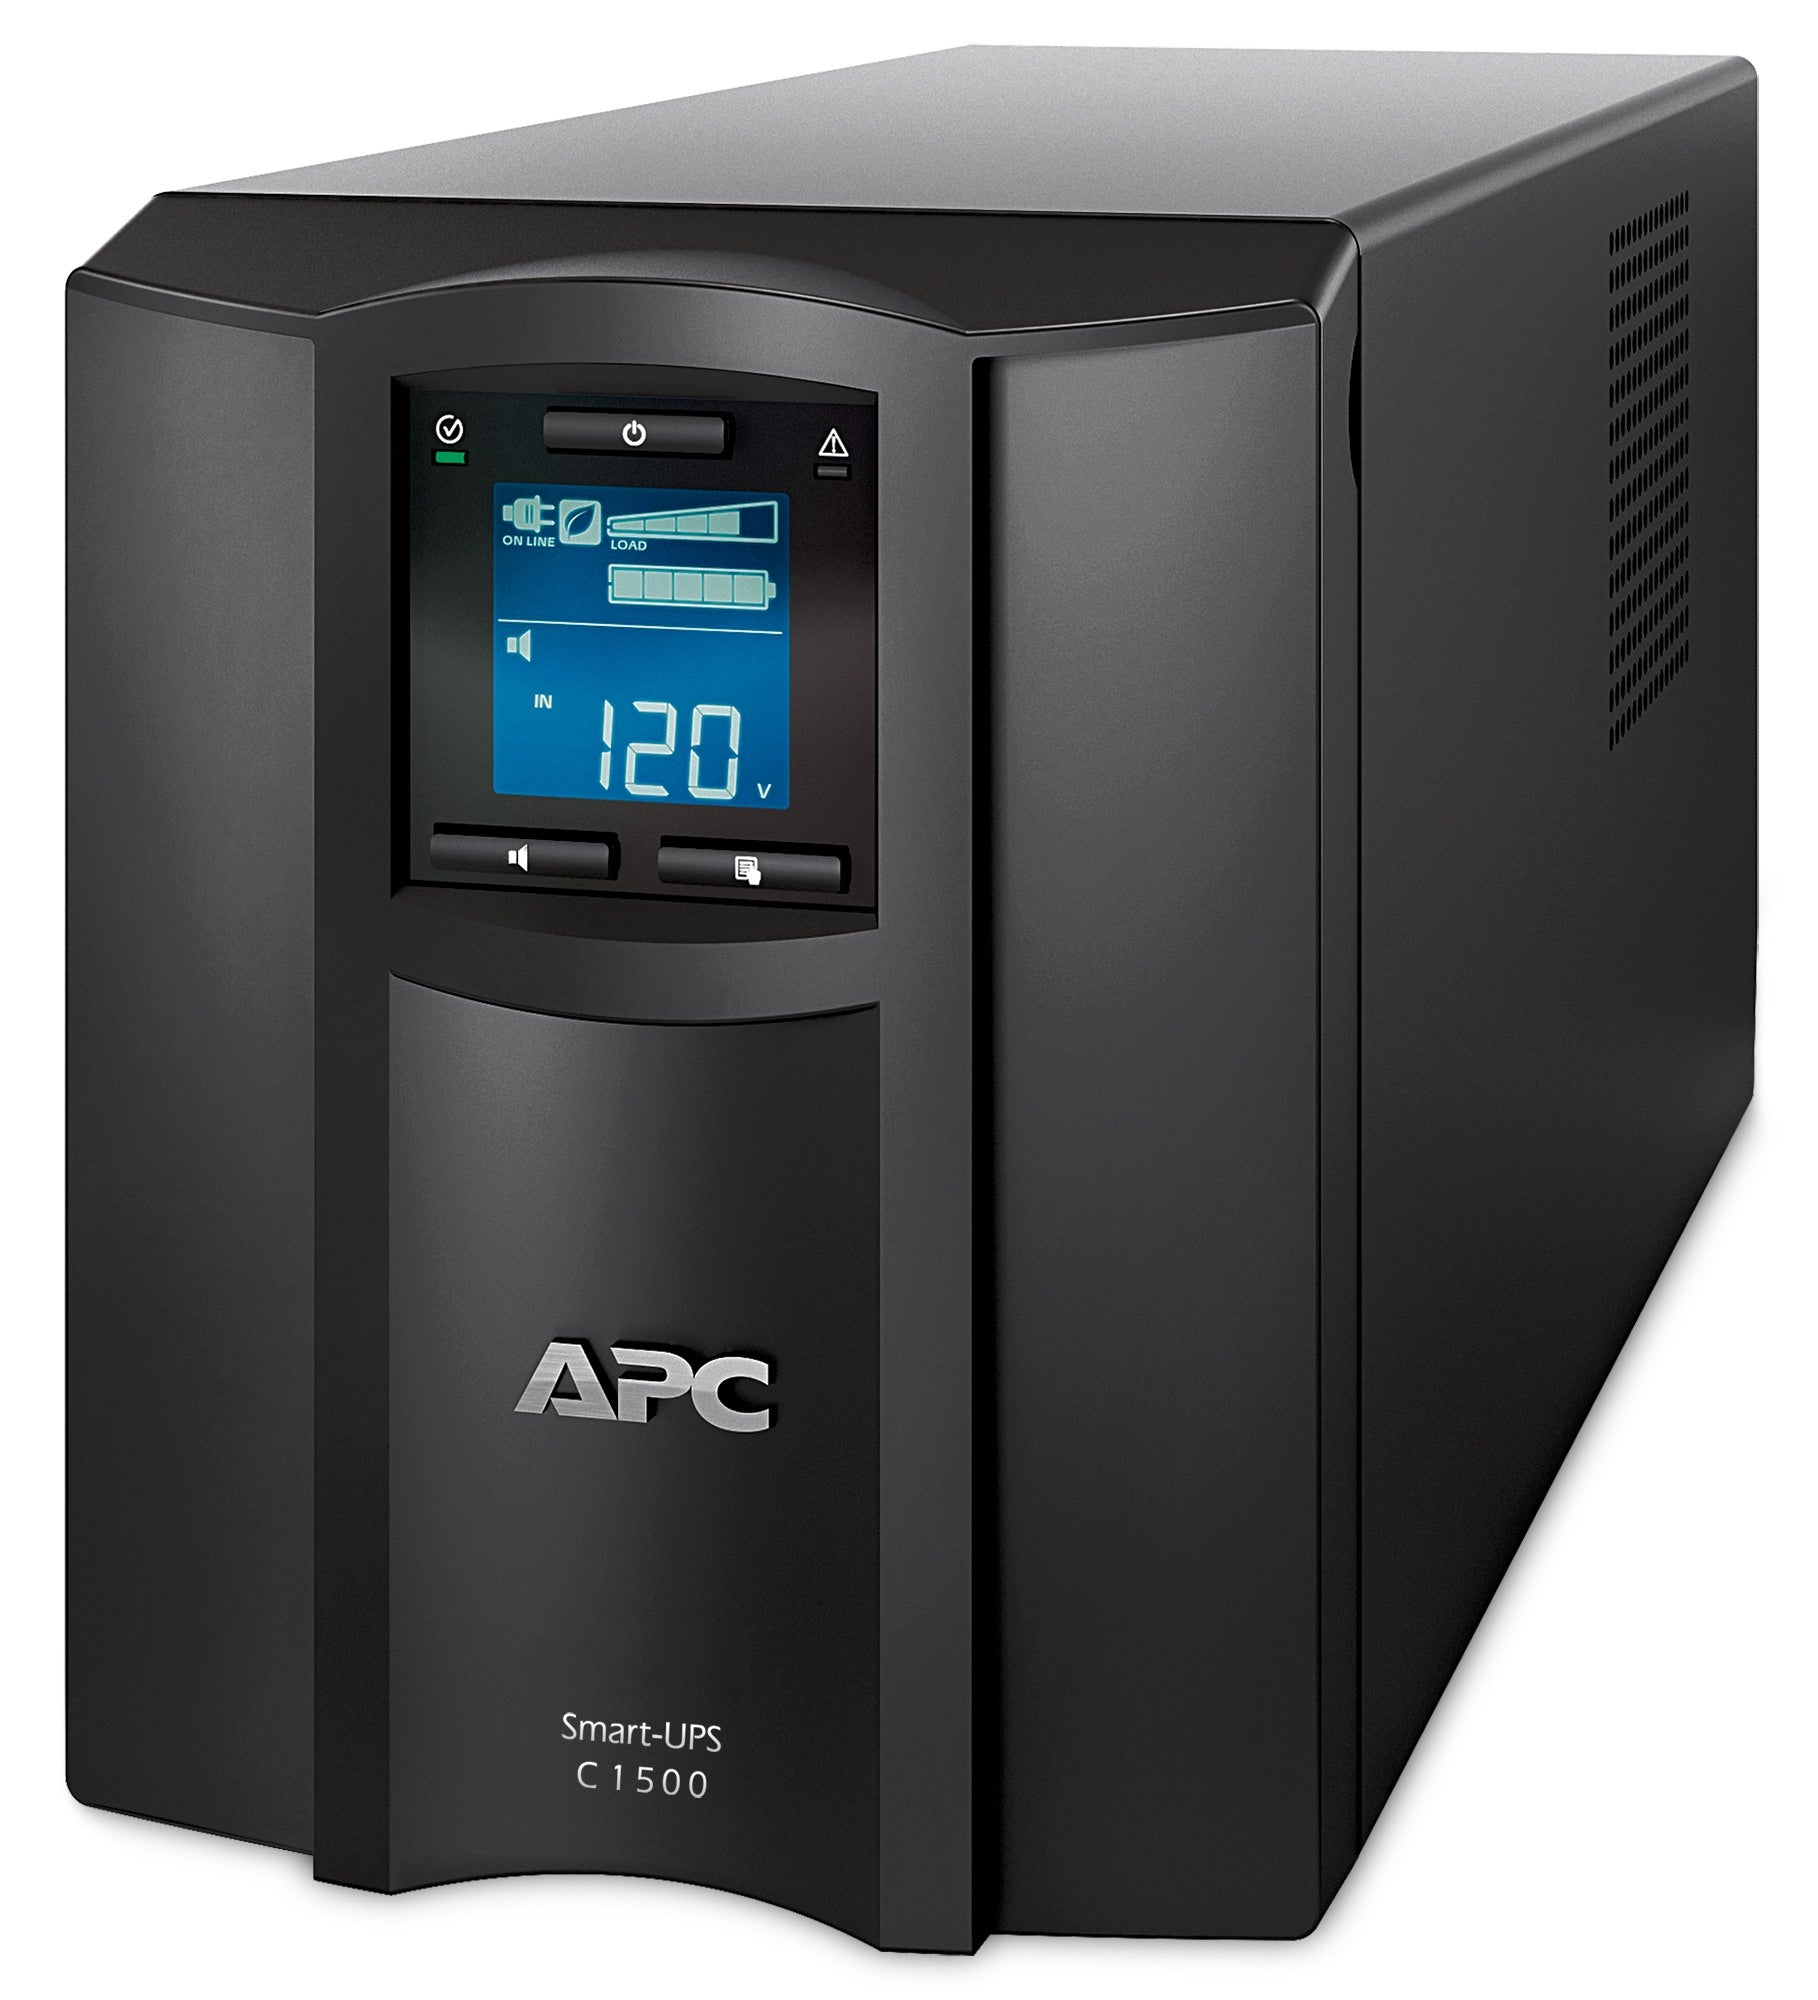 SMC1500IC APC Smart-UPS C 1500VA LCD 230V with SmartConnect